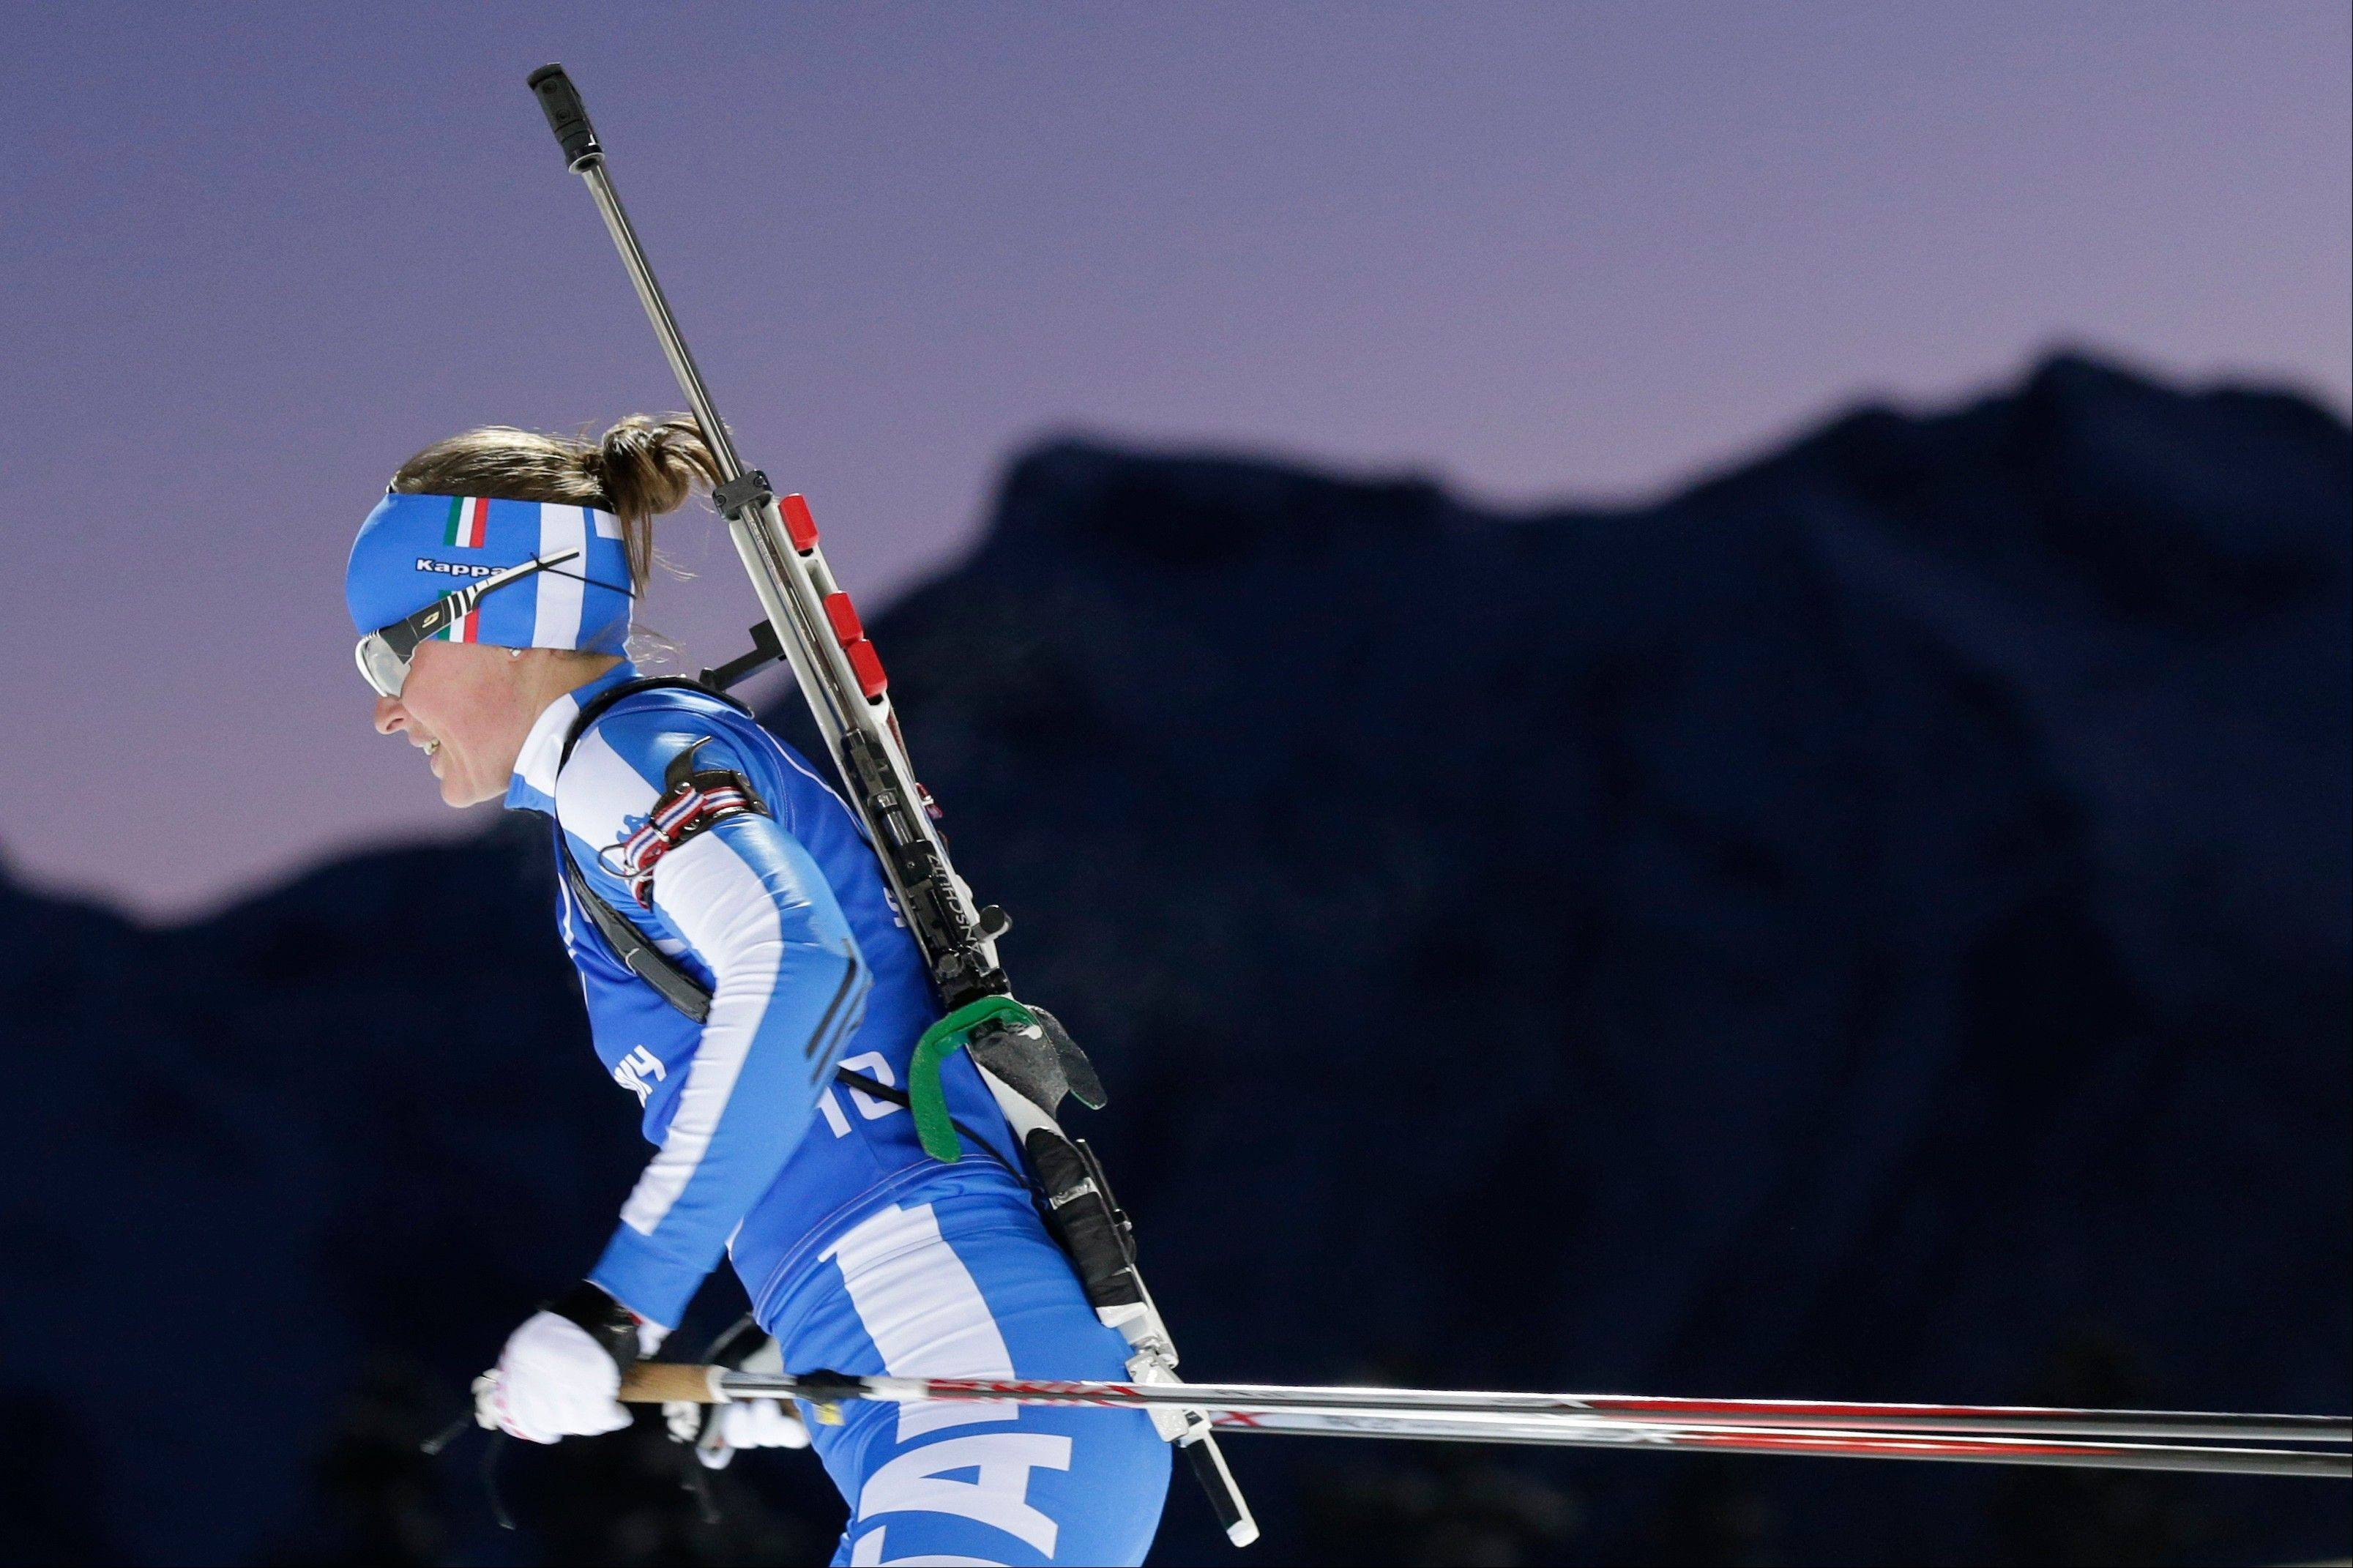 Italy's Karin Oberhofer skis during a biathlon training session at the 2014 Winter Olympics, Thursday, Feb. 6, 2014, in Krasnaya Polyana, Russia.